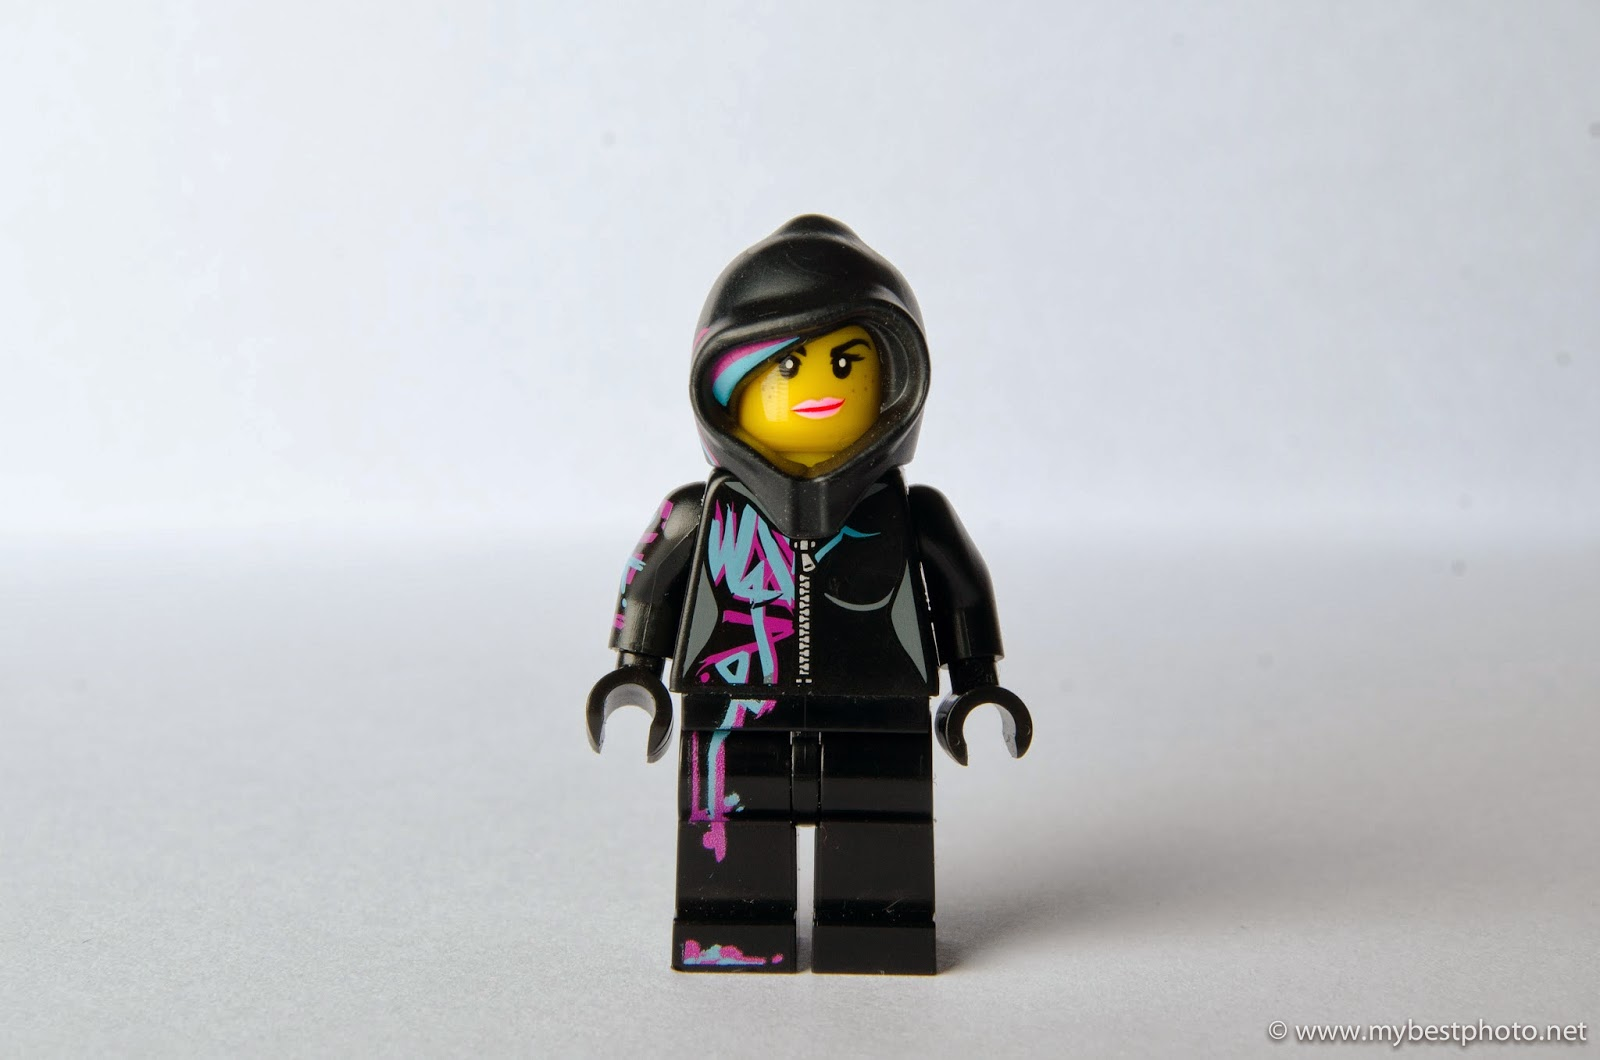 Lego Minifigure Series 12 Lego Movie Wildstyle Portrait - Wallpaper